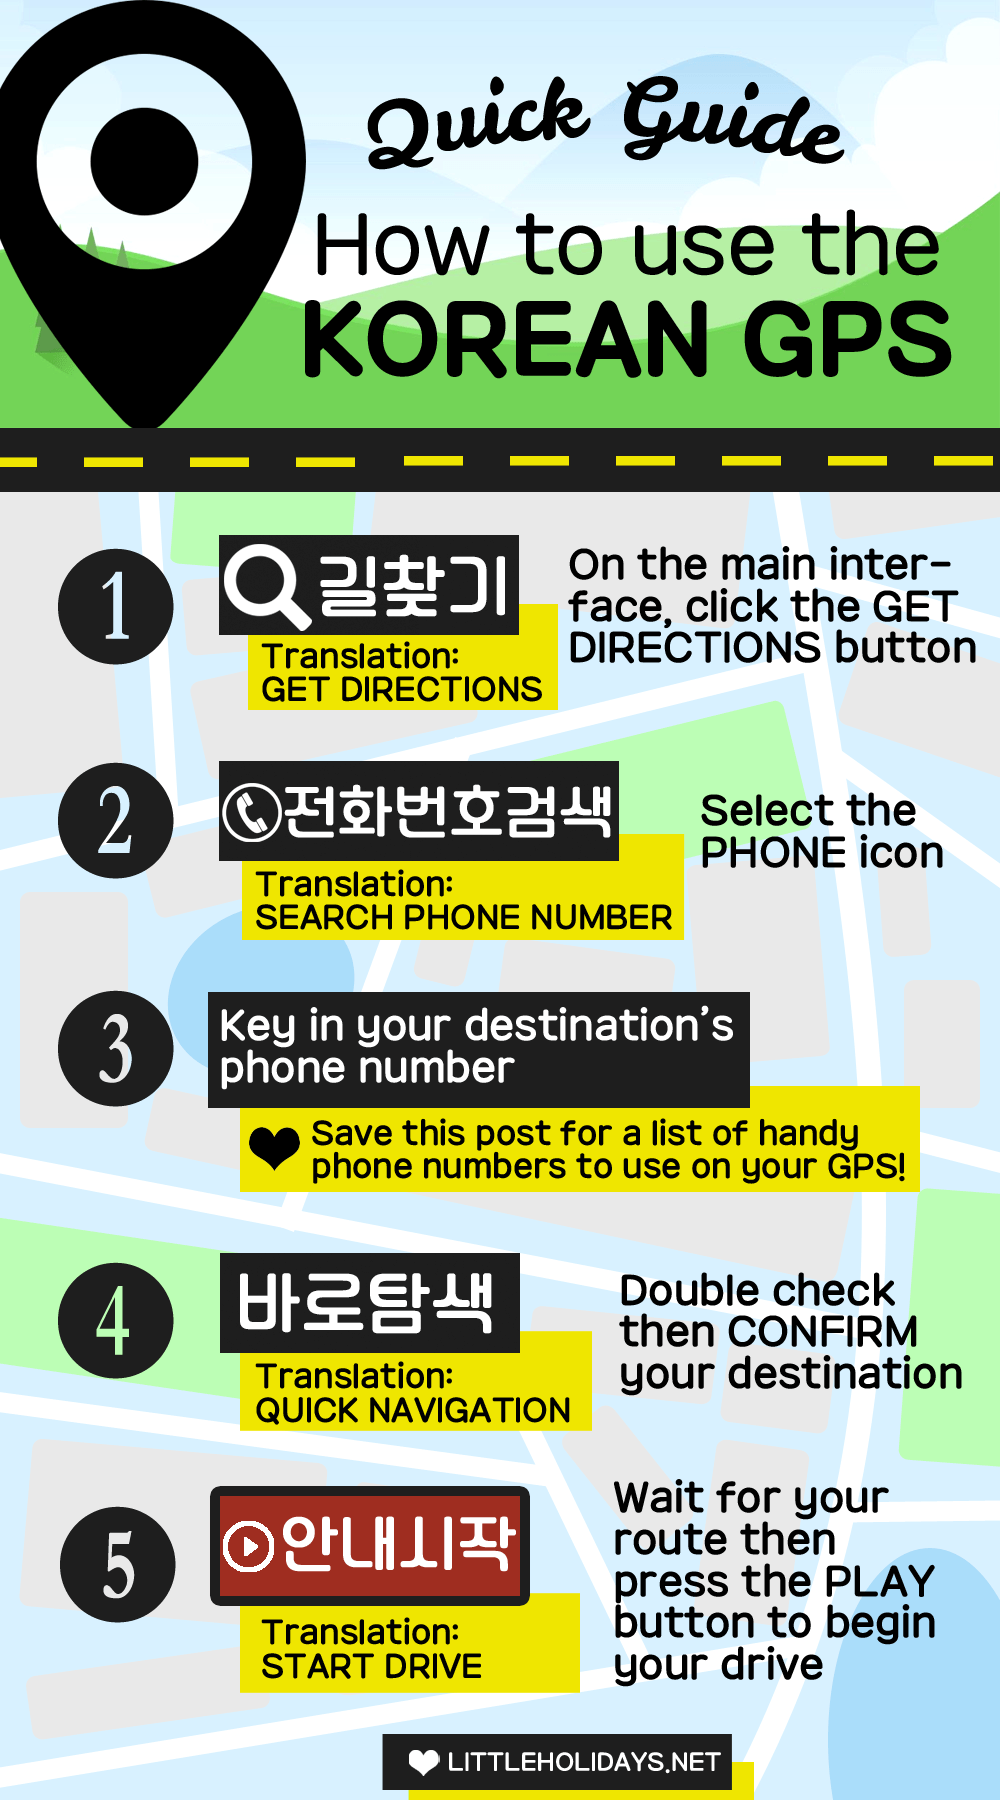 Here's a quick guide to using the Korean GPS using your destinations' phone numbers. Click through for a list of phone numbers of South Korea's most popular destinations!